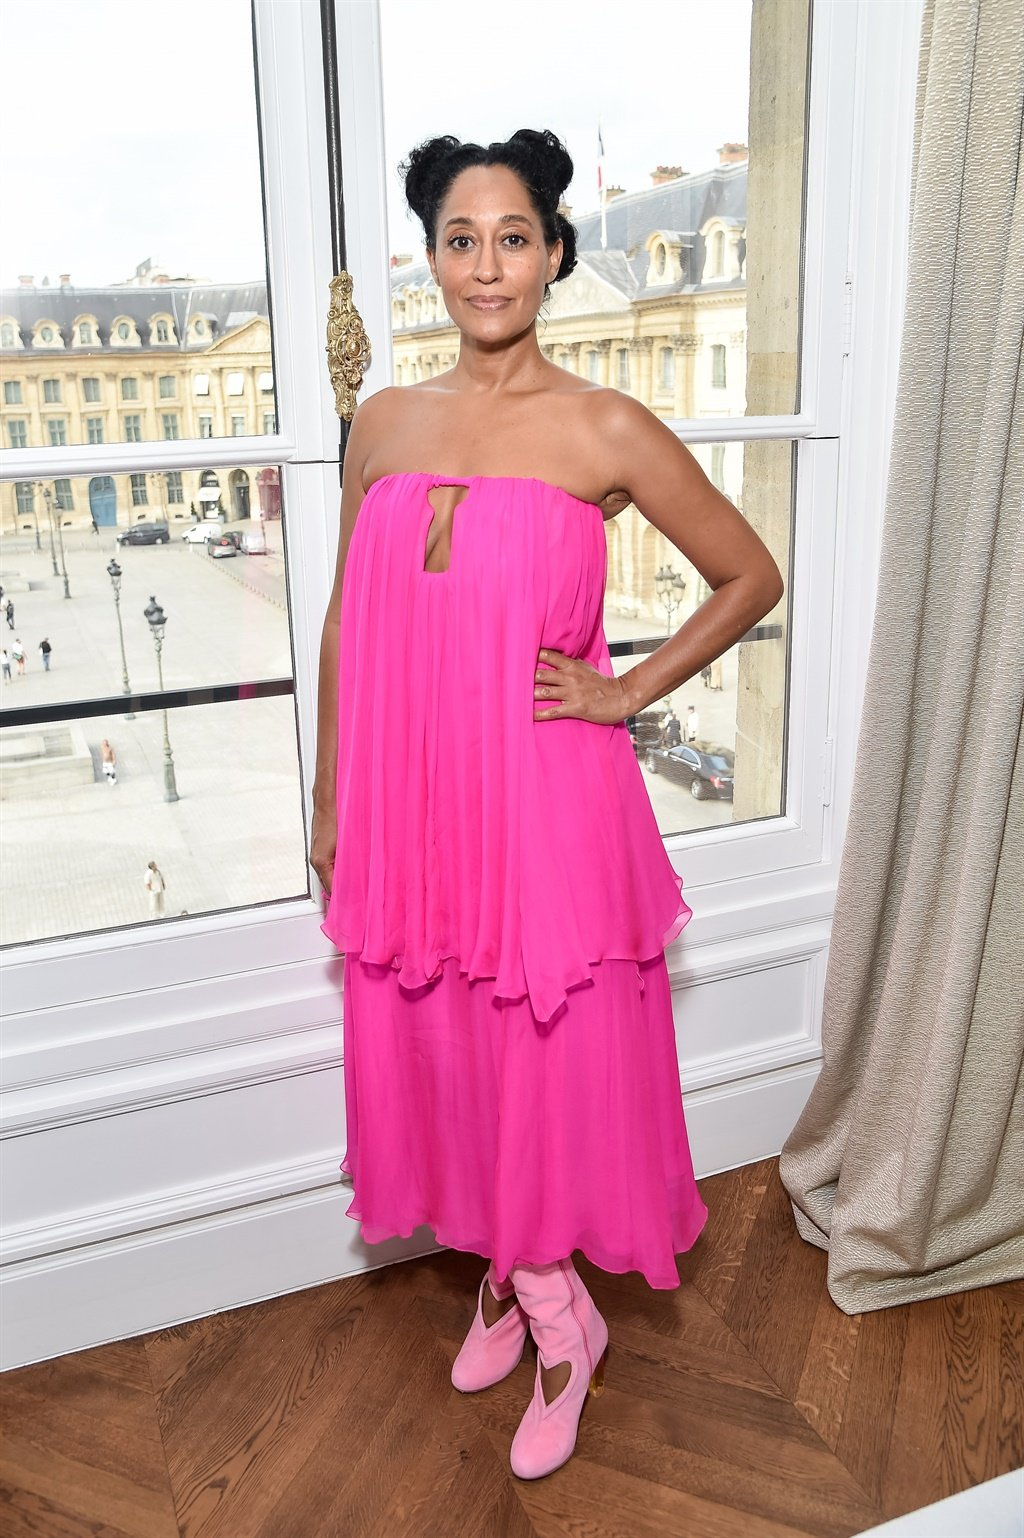 PARIS, FRANCE - JULY 03: Tracee Ellis Ross attend